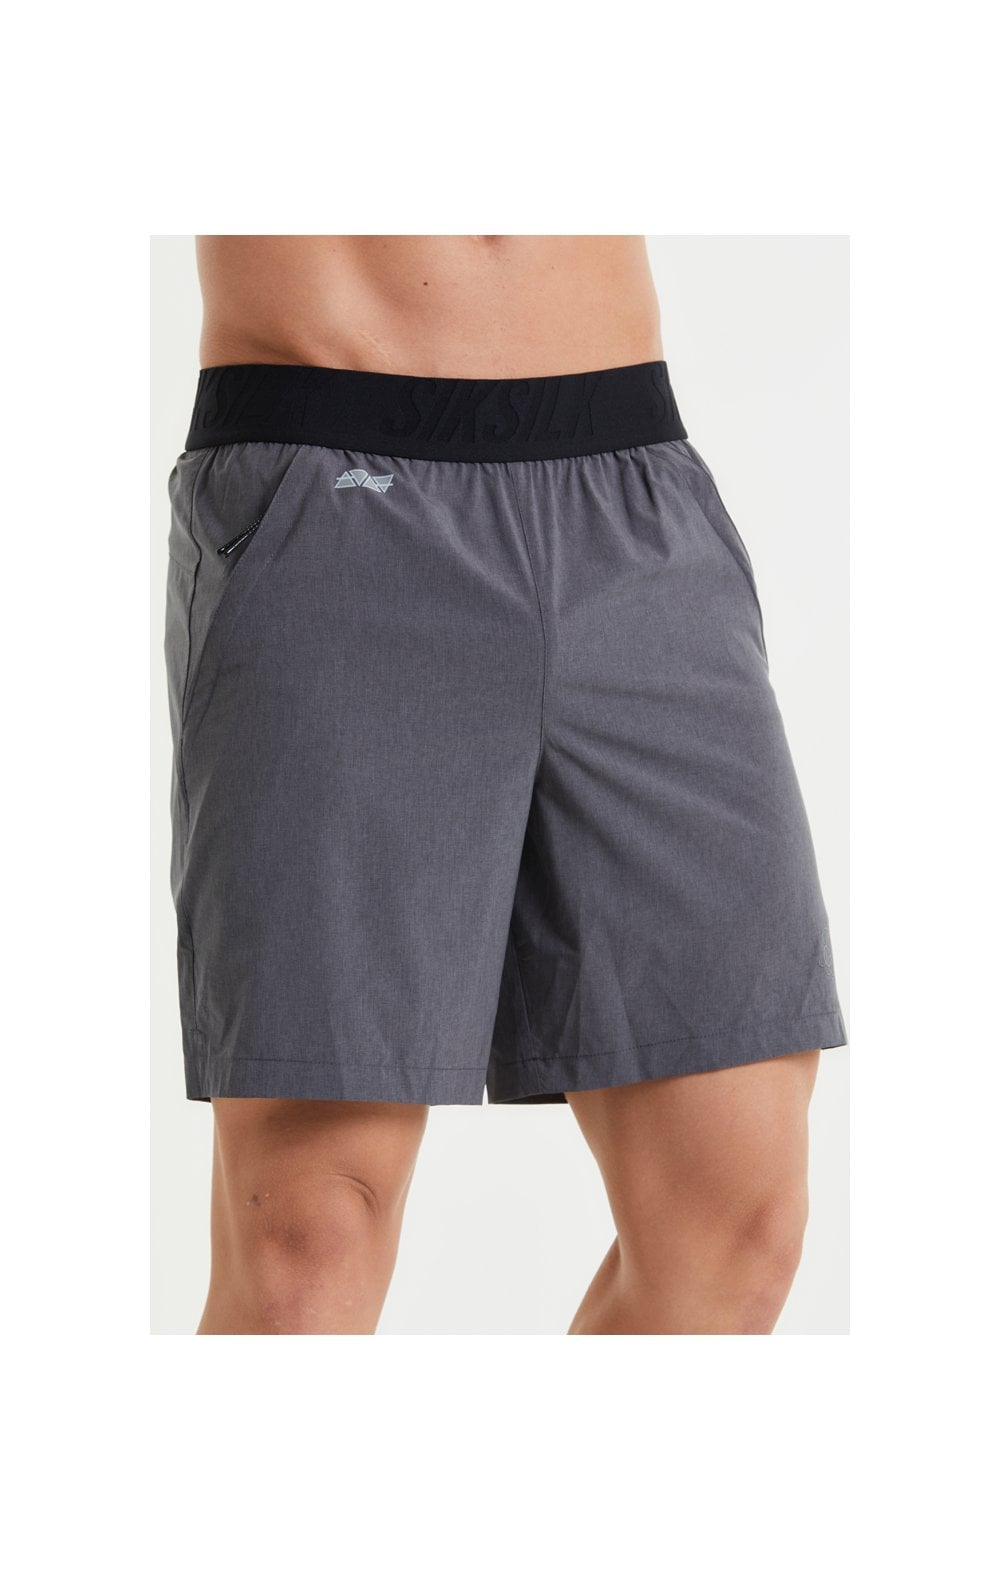 SikSilk Pressure Woven Long Shorts - Charcoal Marl (1)